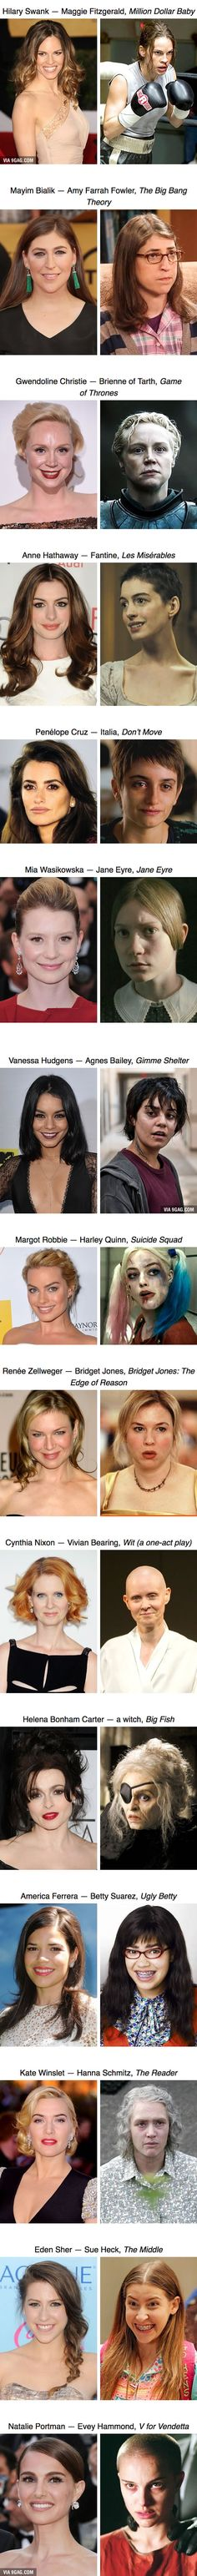 15 actresses who sacrificed their beauty for movie roles - 9GAG